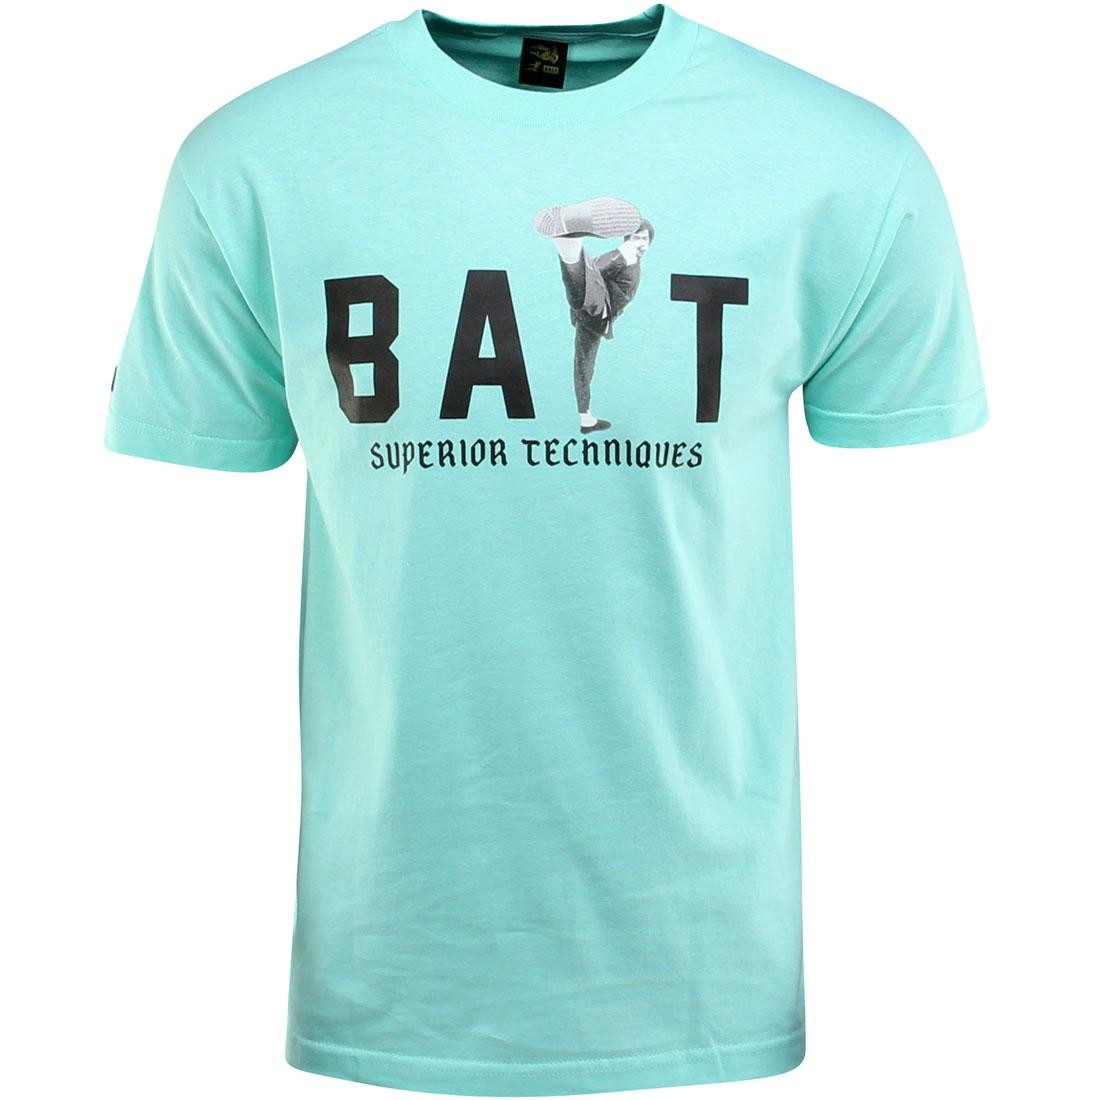 BAIT x Bruce Lee High Kick Tee (teal / celadon / black)